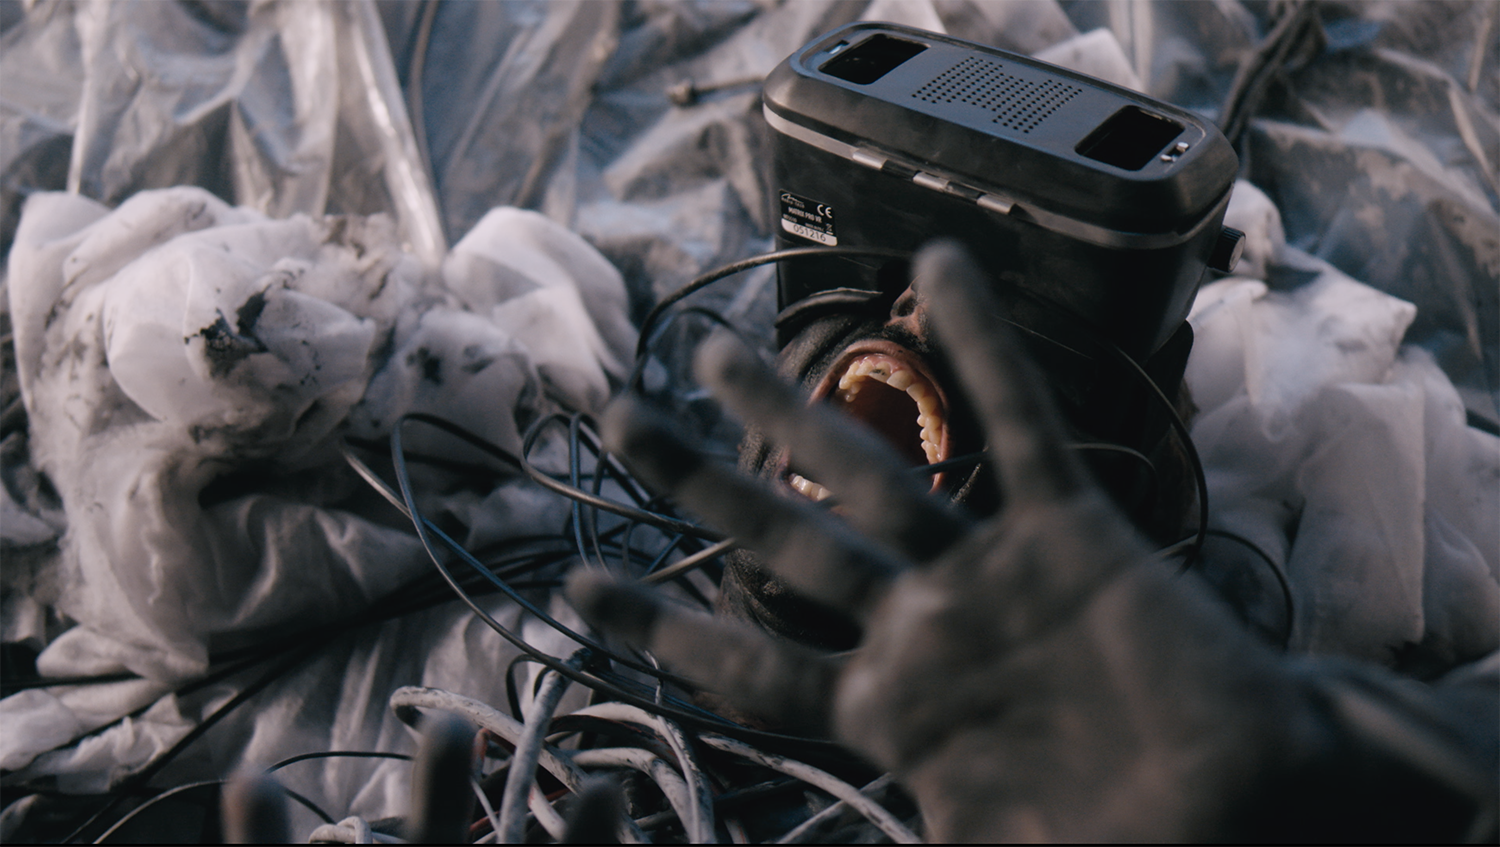 """Official still from music video """"Feel Complete"""", a picture of a man with VR glasses screaming."""